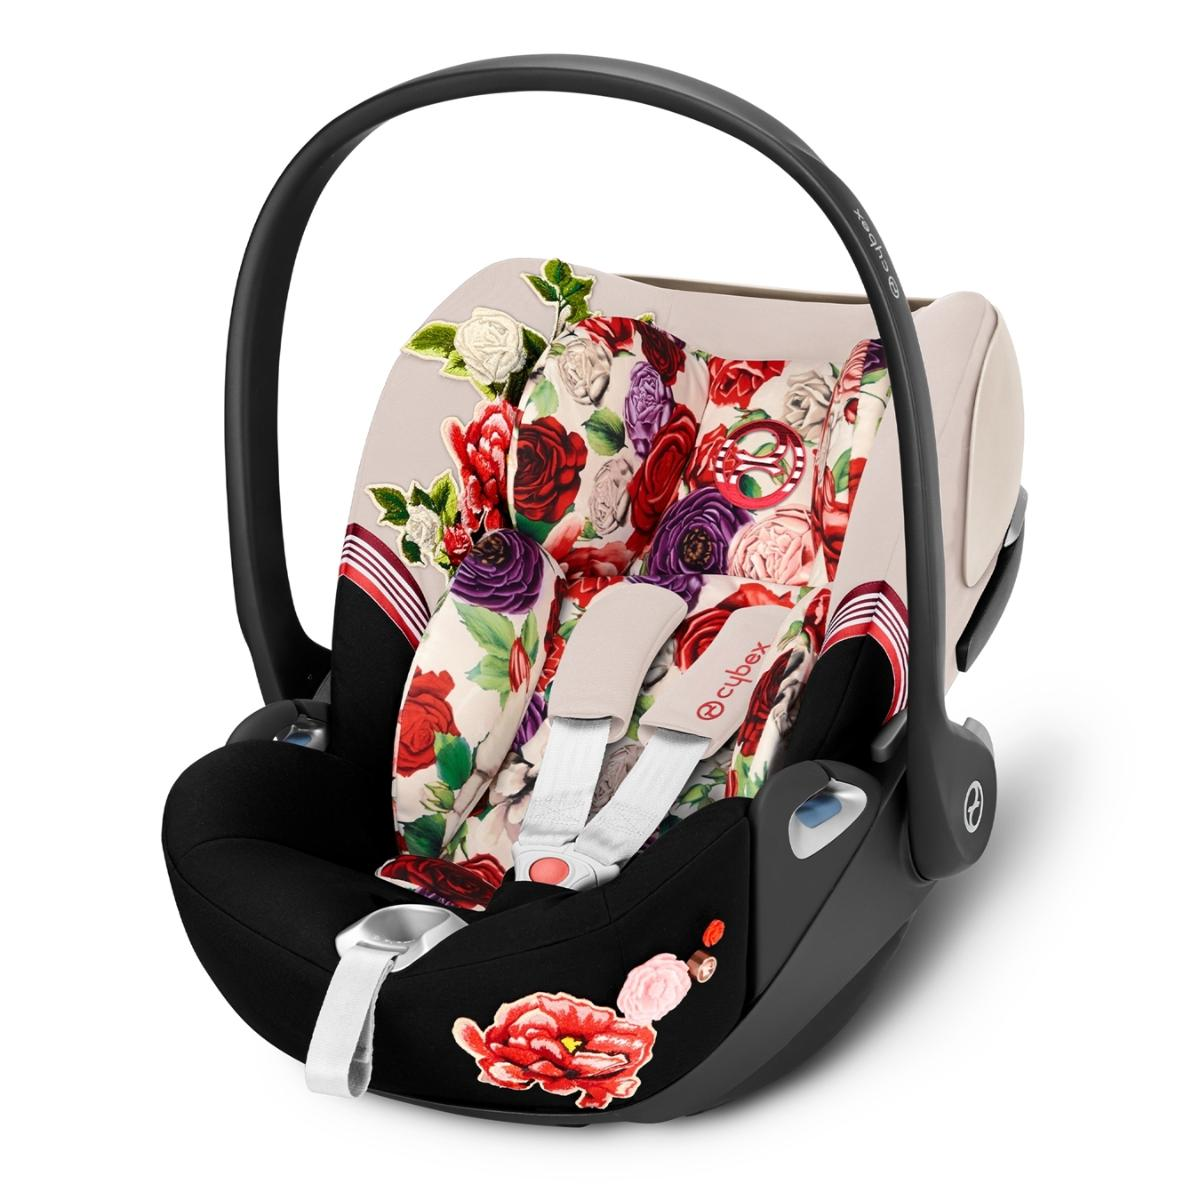 Cybex Κάθισμα Αυτοκινήτου Cloud Z i-Size Fashion Collection Spring Blossom Light